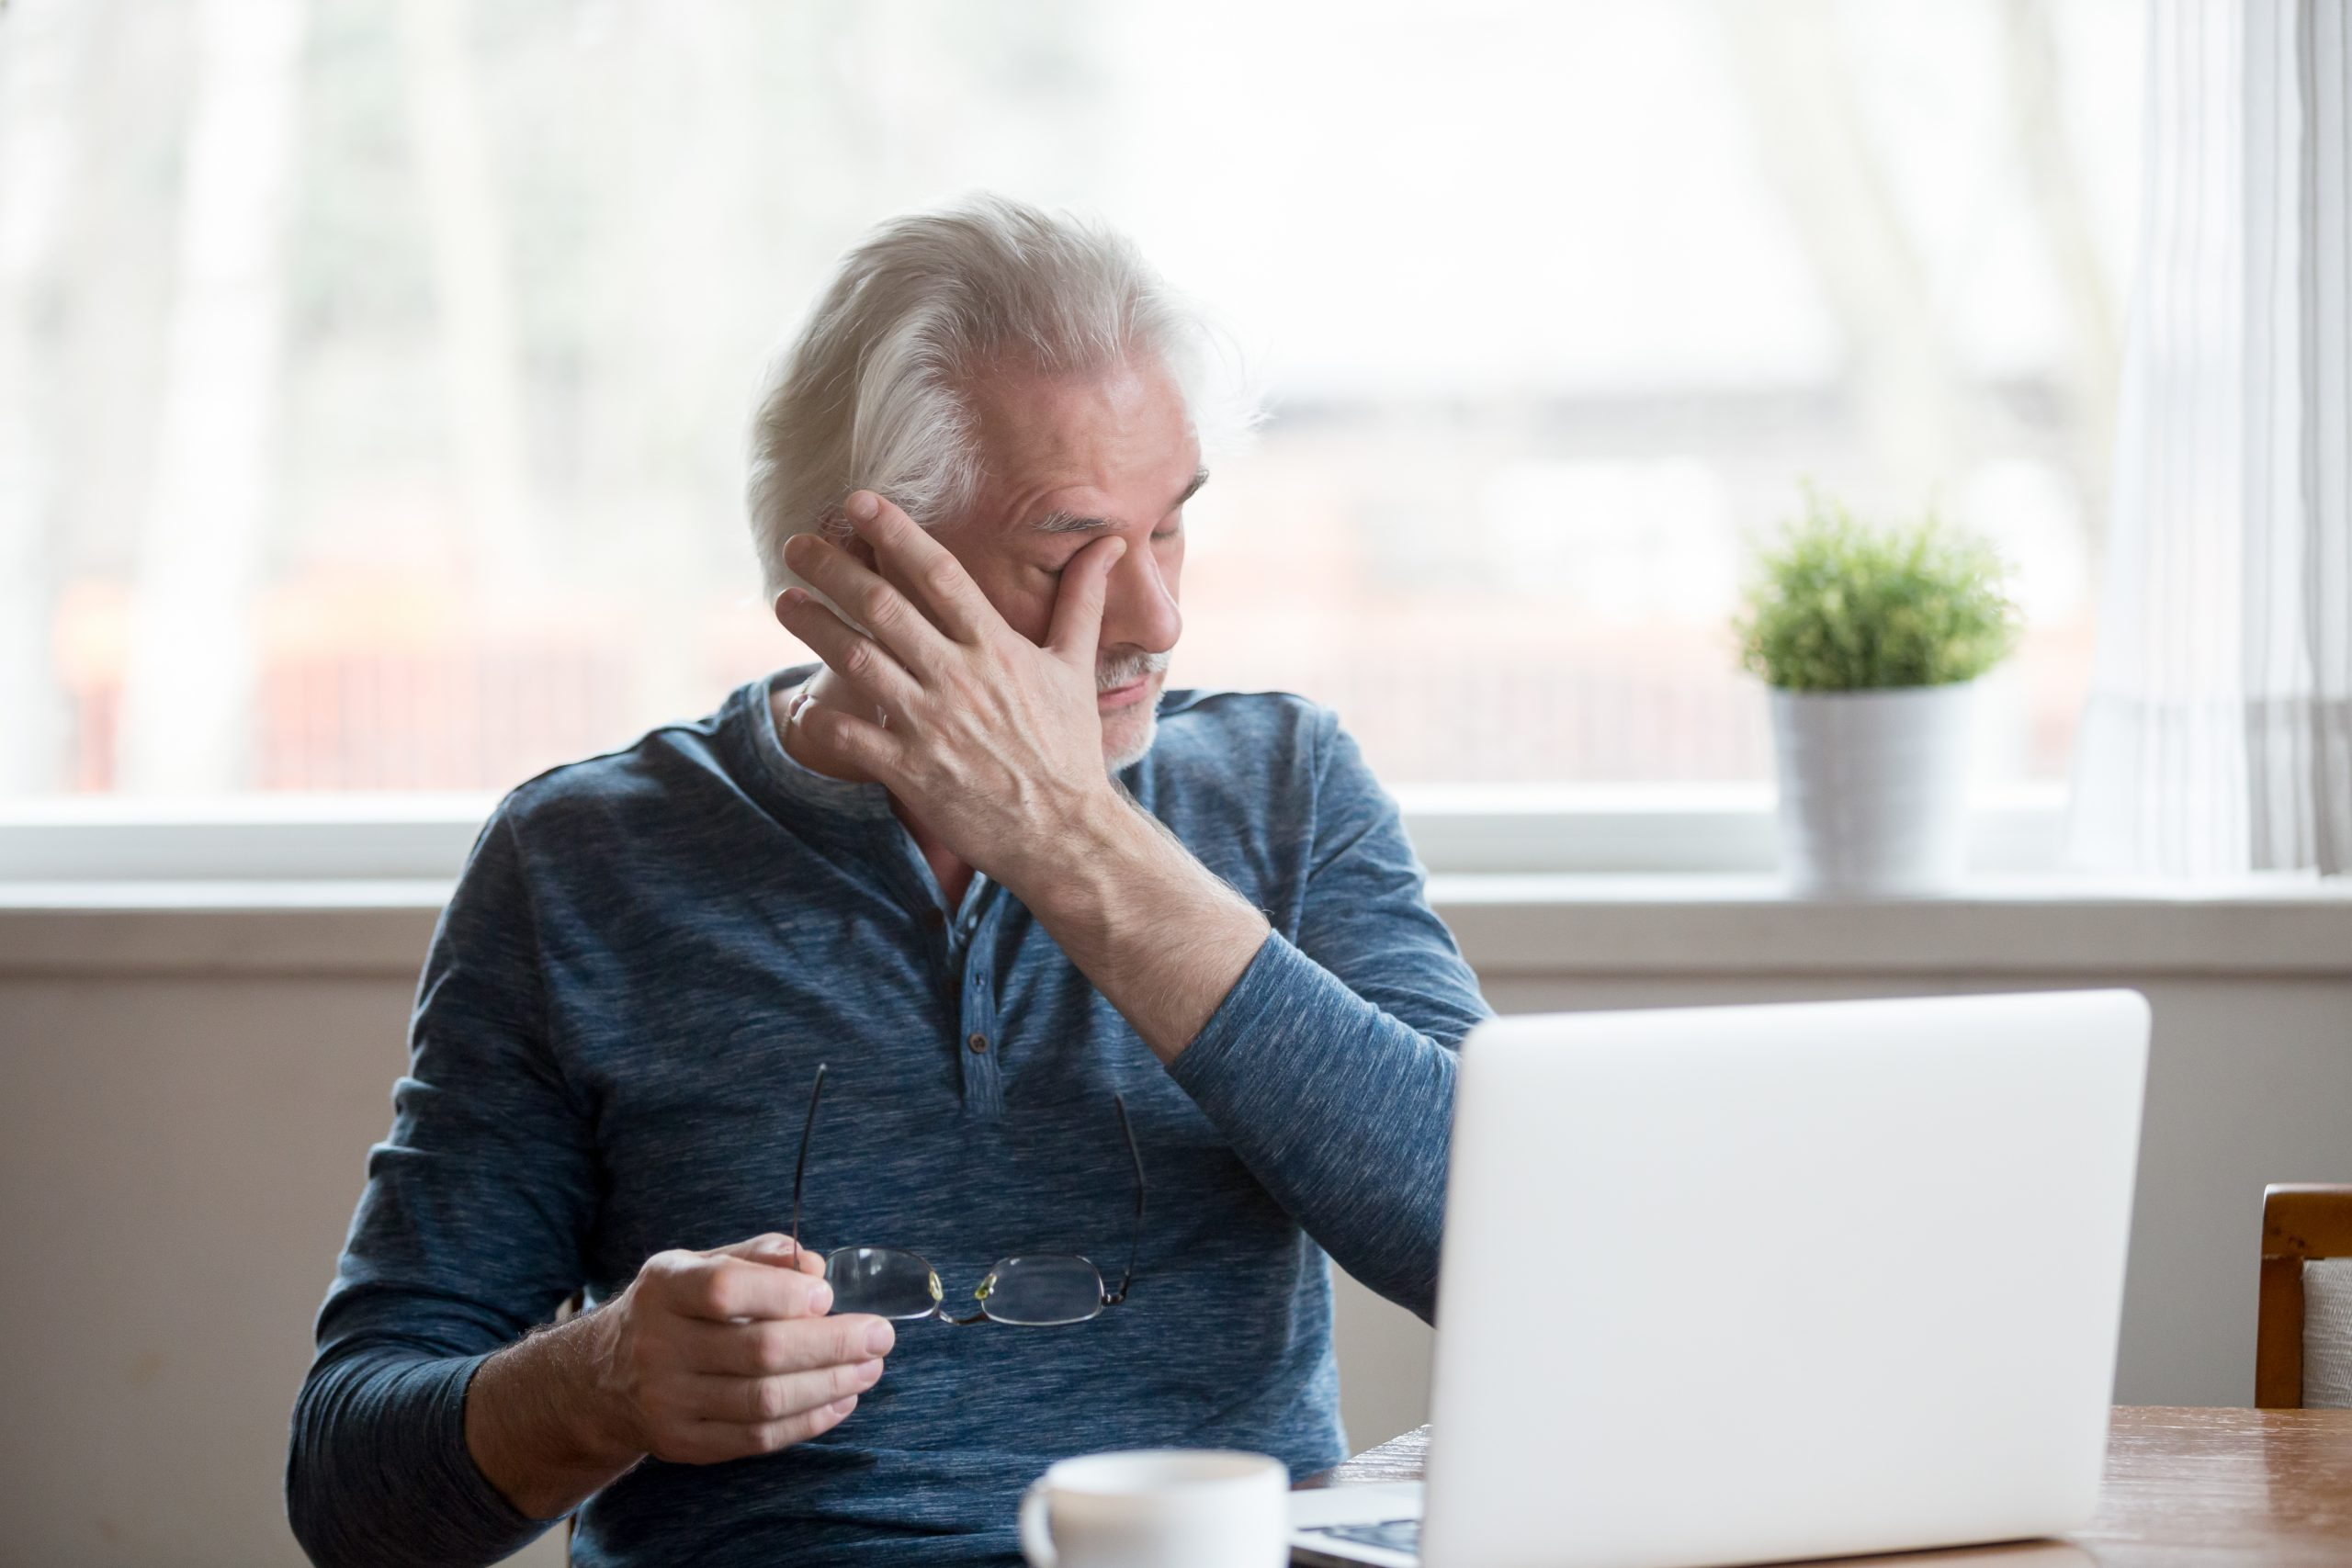 Fatigued mature old man taking off glasses suffering from tired dry irritated eyes after long computer use